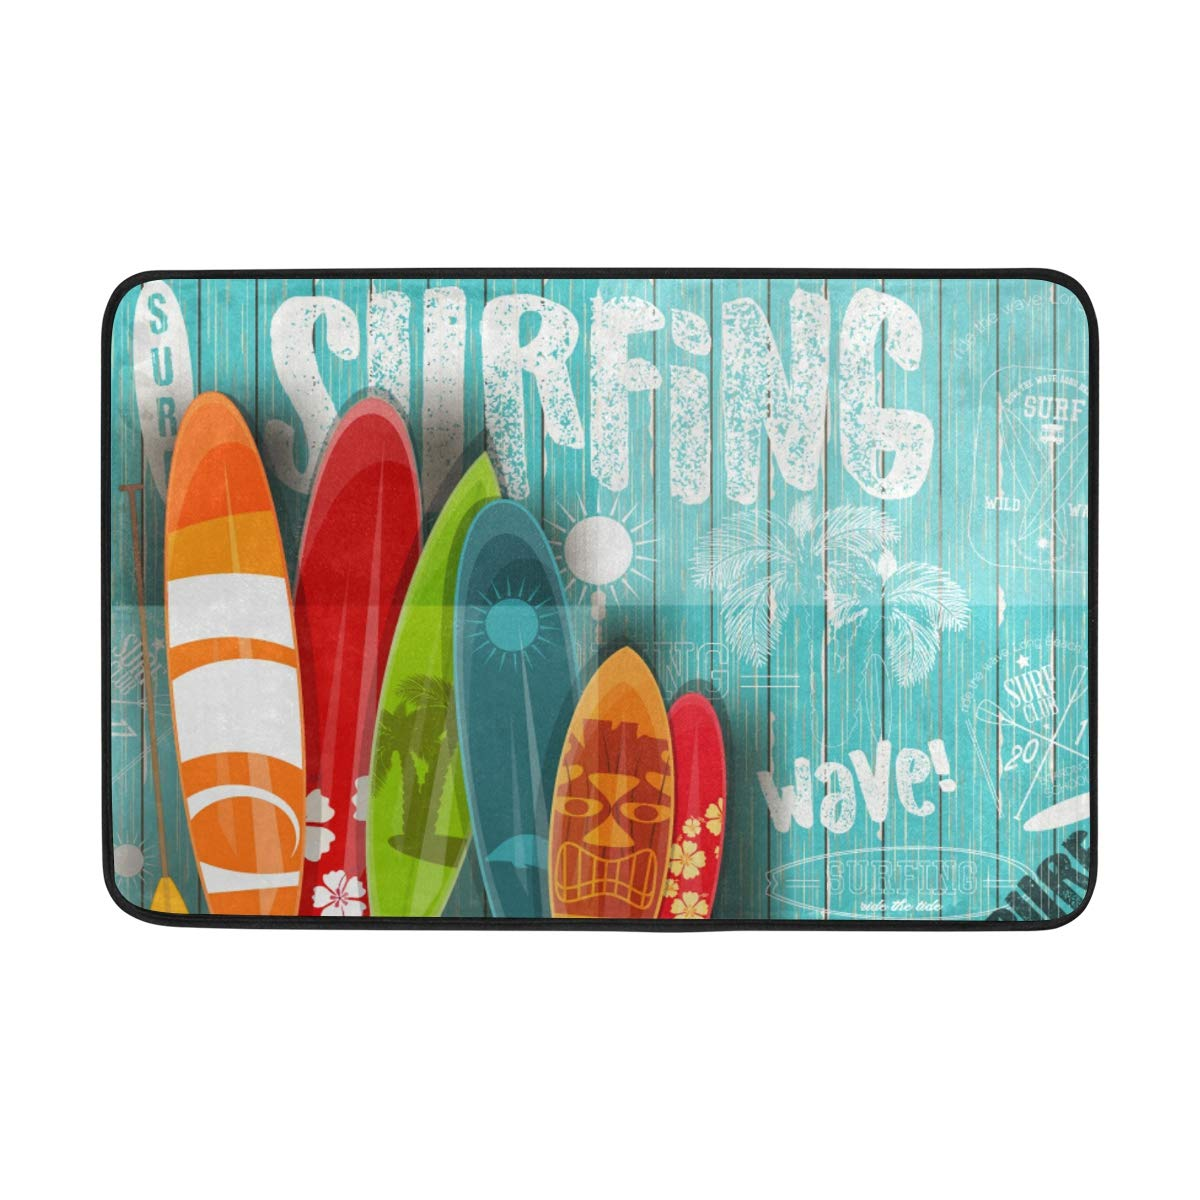 Amazon Salon De Jardin Aluminium Nouveau Amazon Surfboard Surfing Bath Mat Non Slip Memory Foam Of 40 Nouveau Amazon Salon De Jardin Aluminium